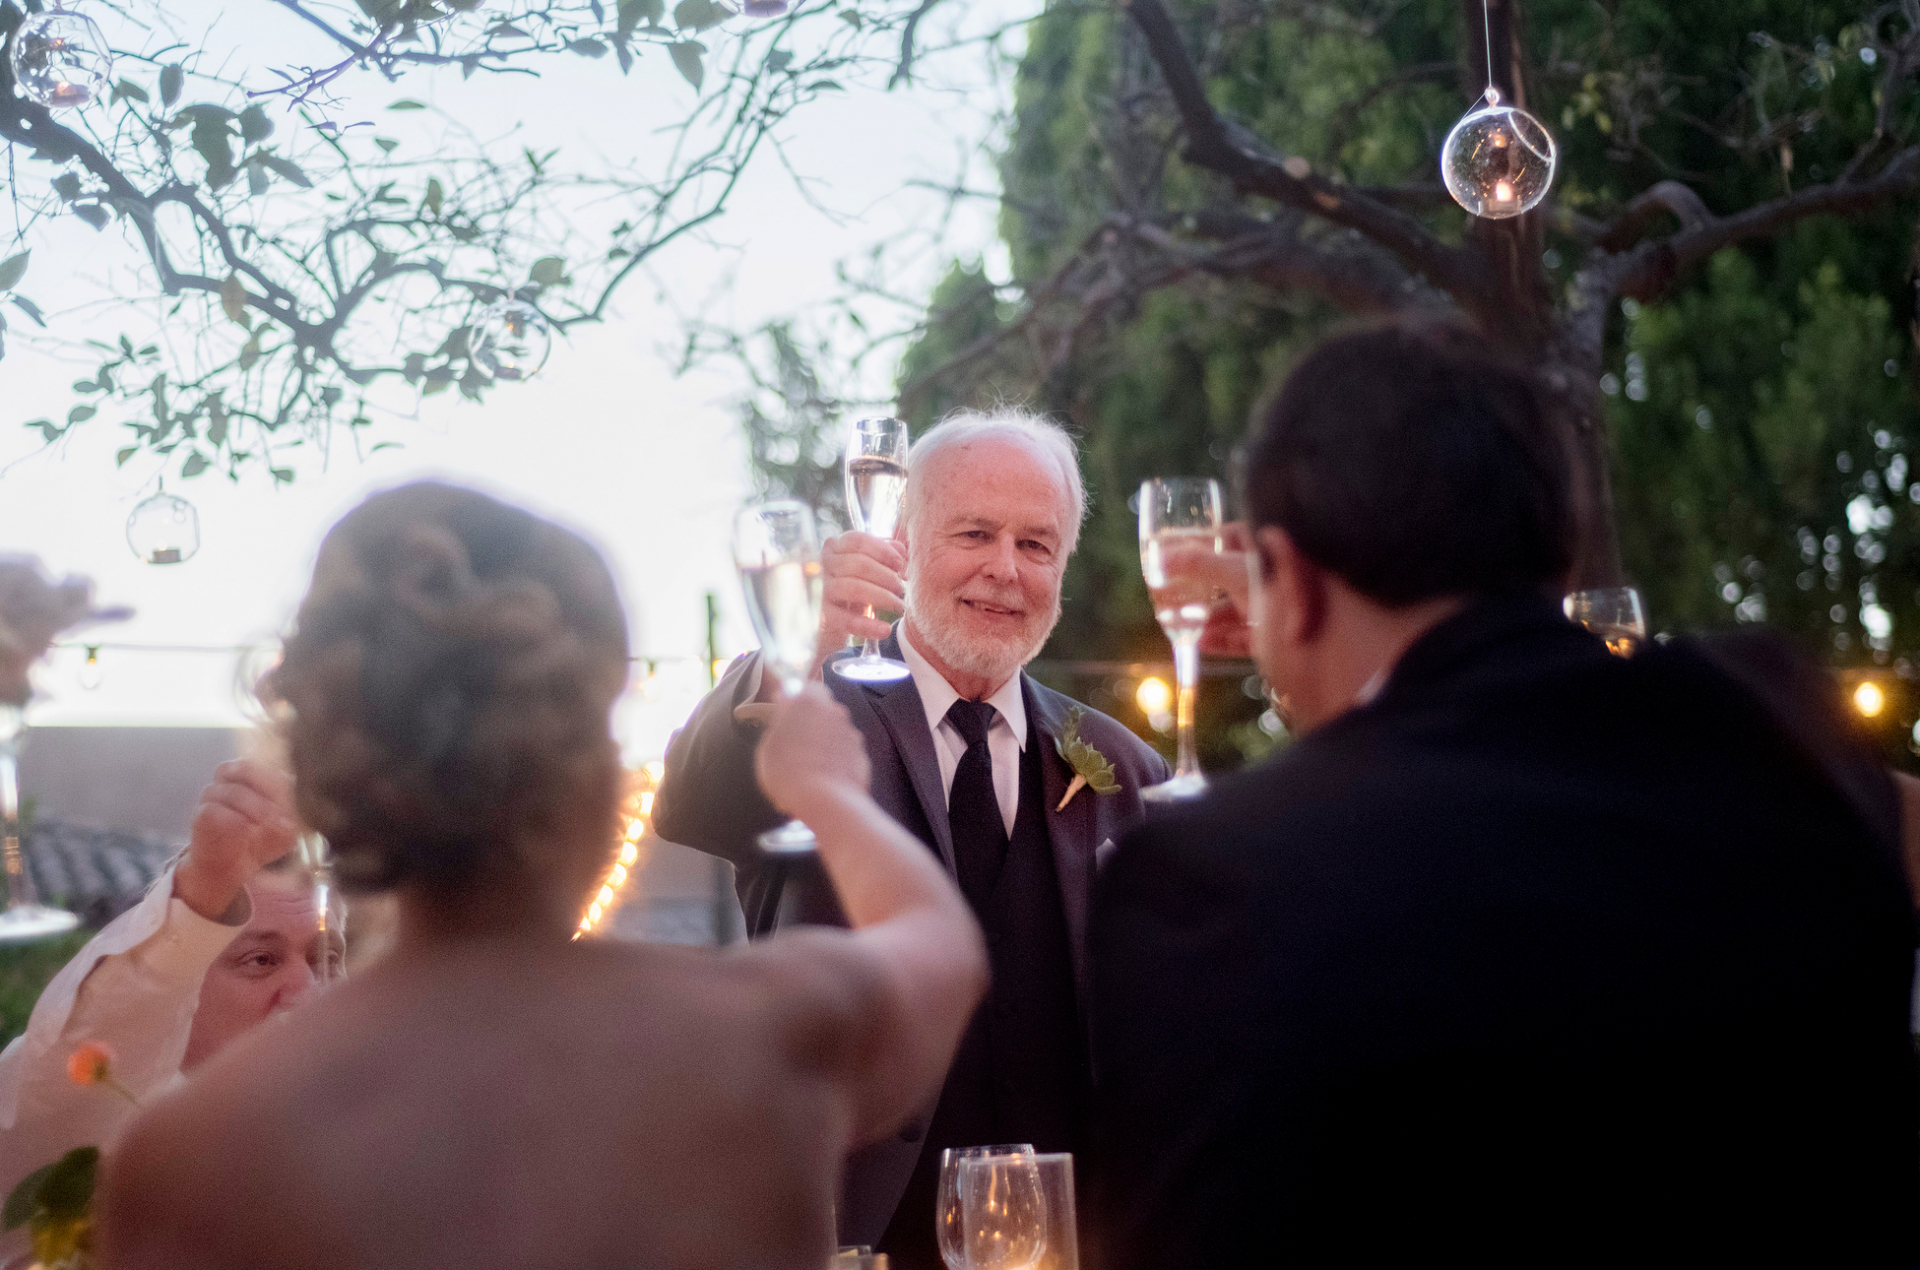 AZ Elopement Image | the guests toast the couple and everyone shares champagne